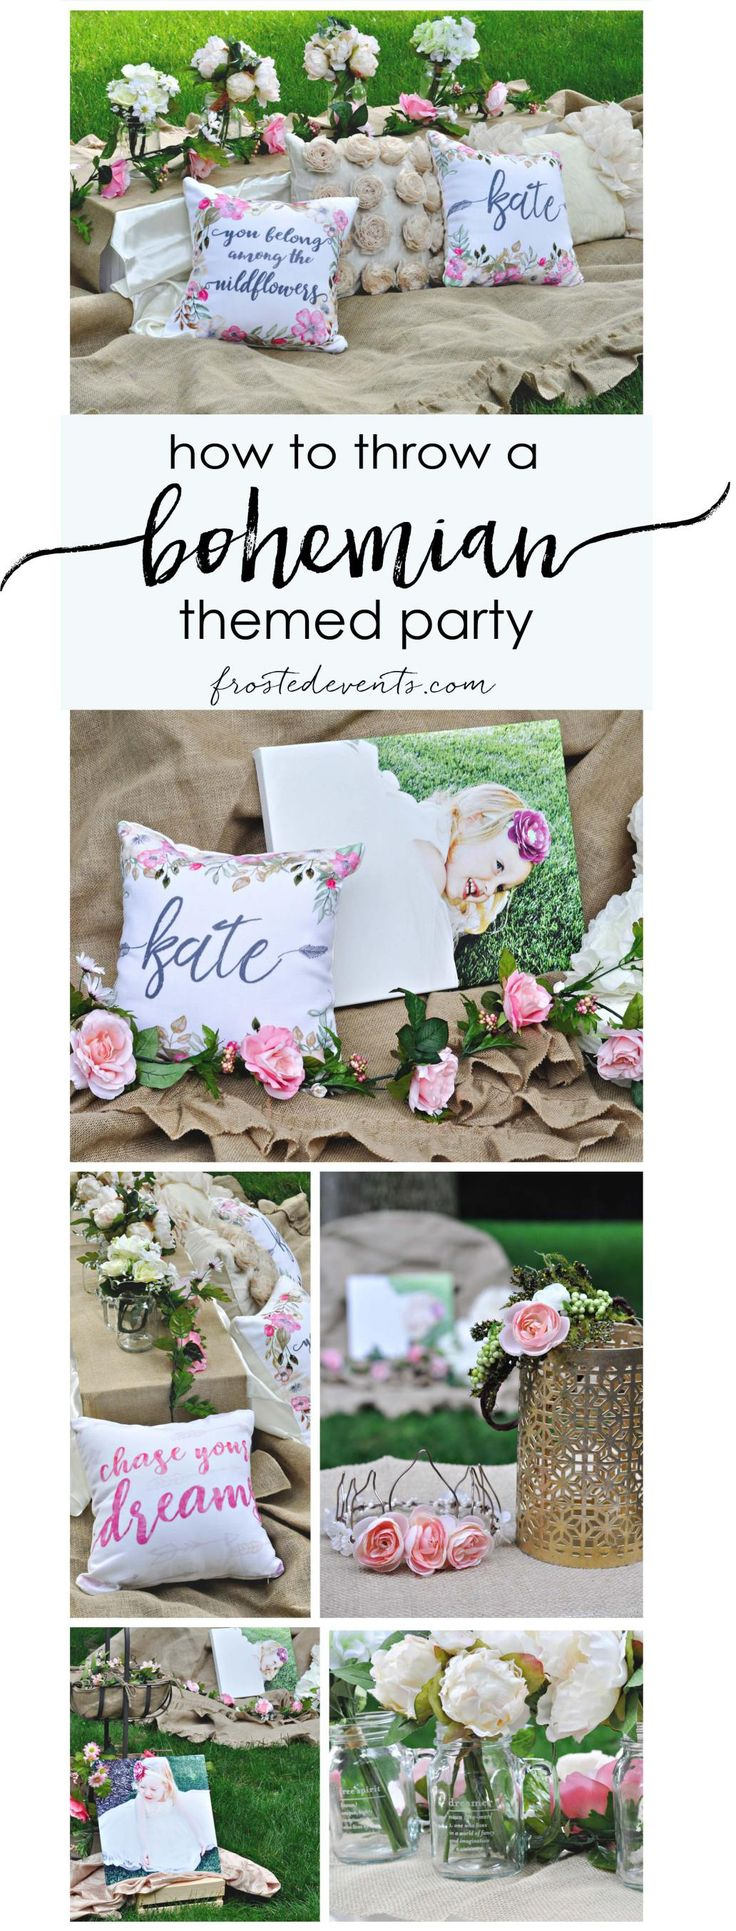 Bohemian Party Ideas for a boho chic birthday, baby shower or bridal shower. Floral tablescape and pretty details via @frostedevents